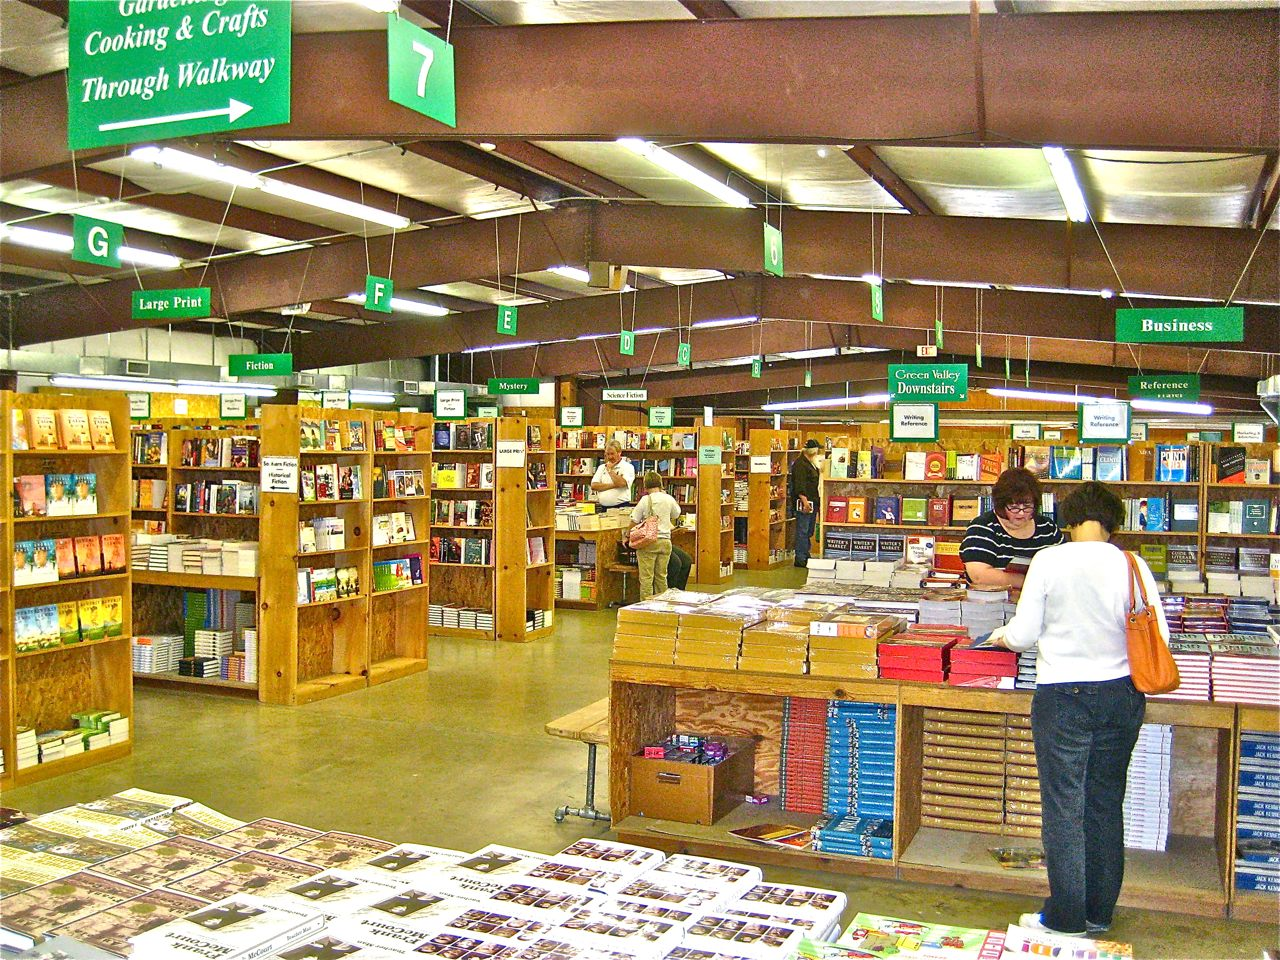 Green Valley Book Fair